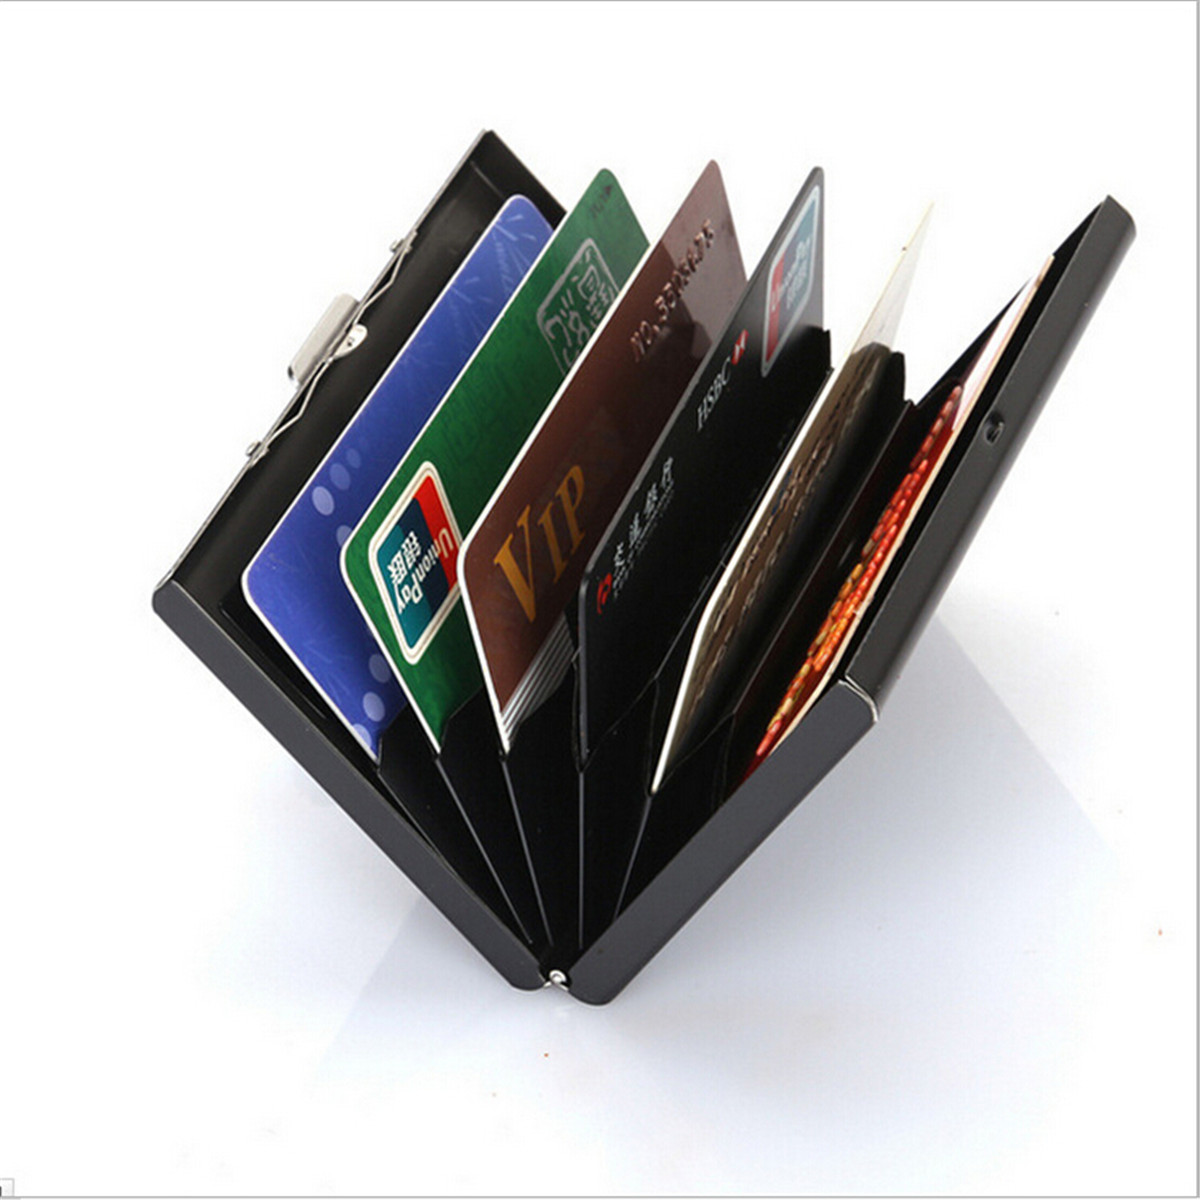 Card Holder Black Stainless Steel ID Credit Pocket Metal Box Case